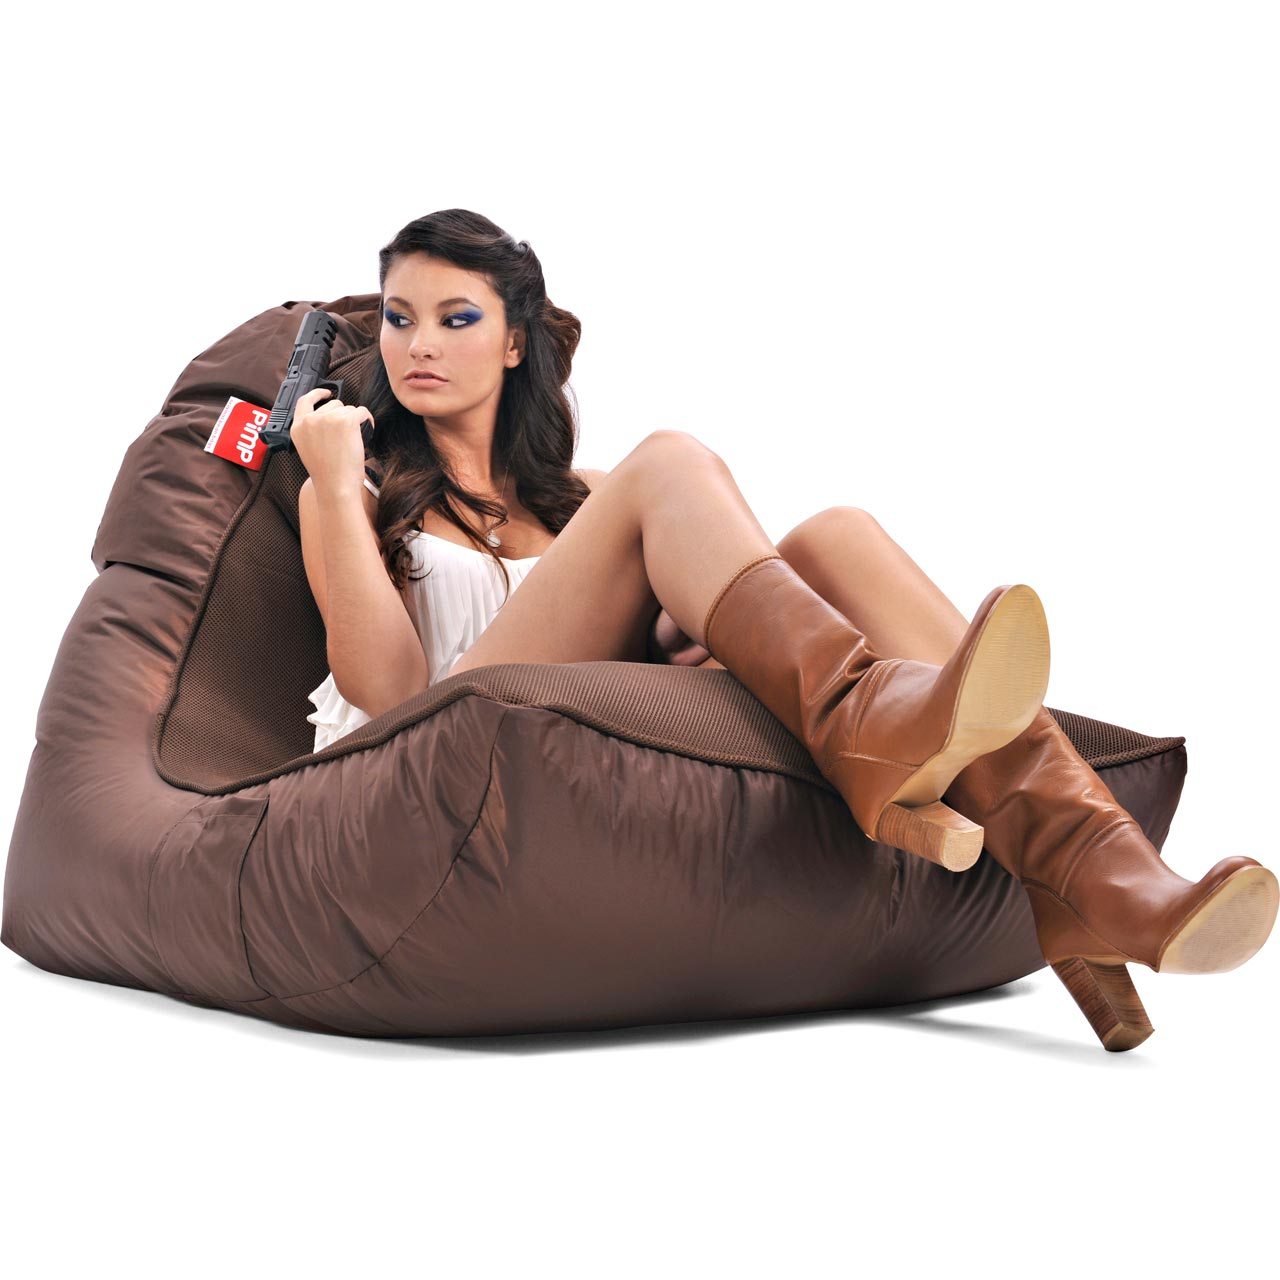 VIP Bean Bag Sofa + Ottoman Set (Choc-o-holic Brown)